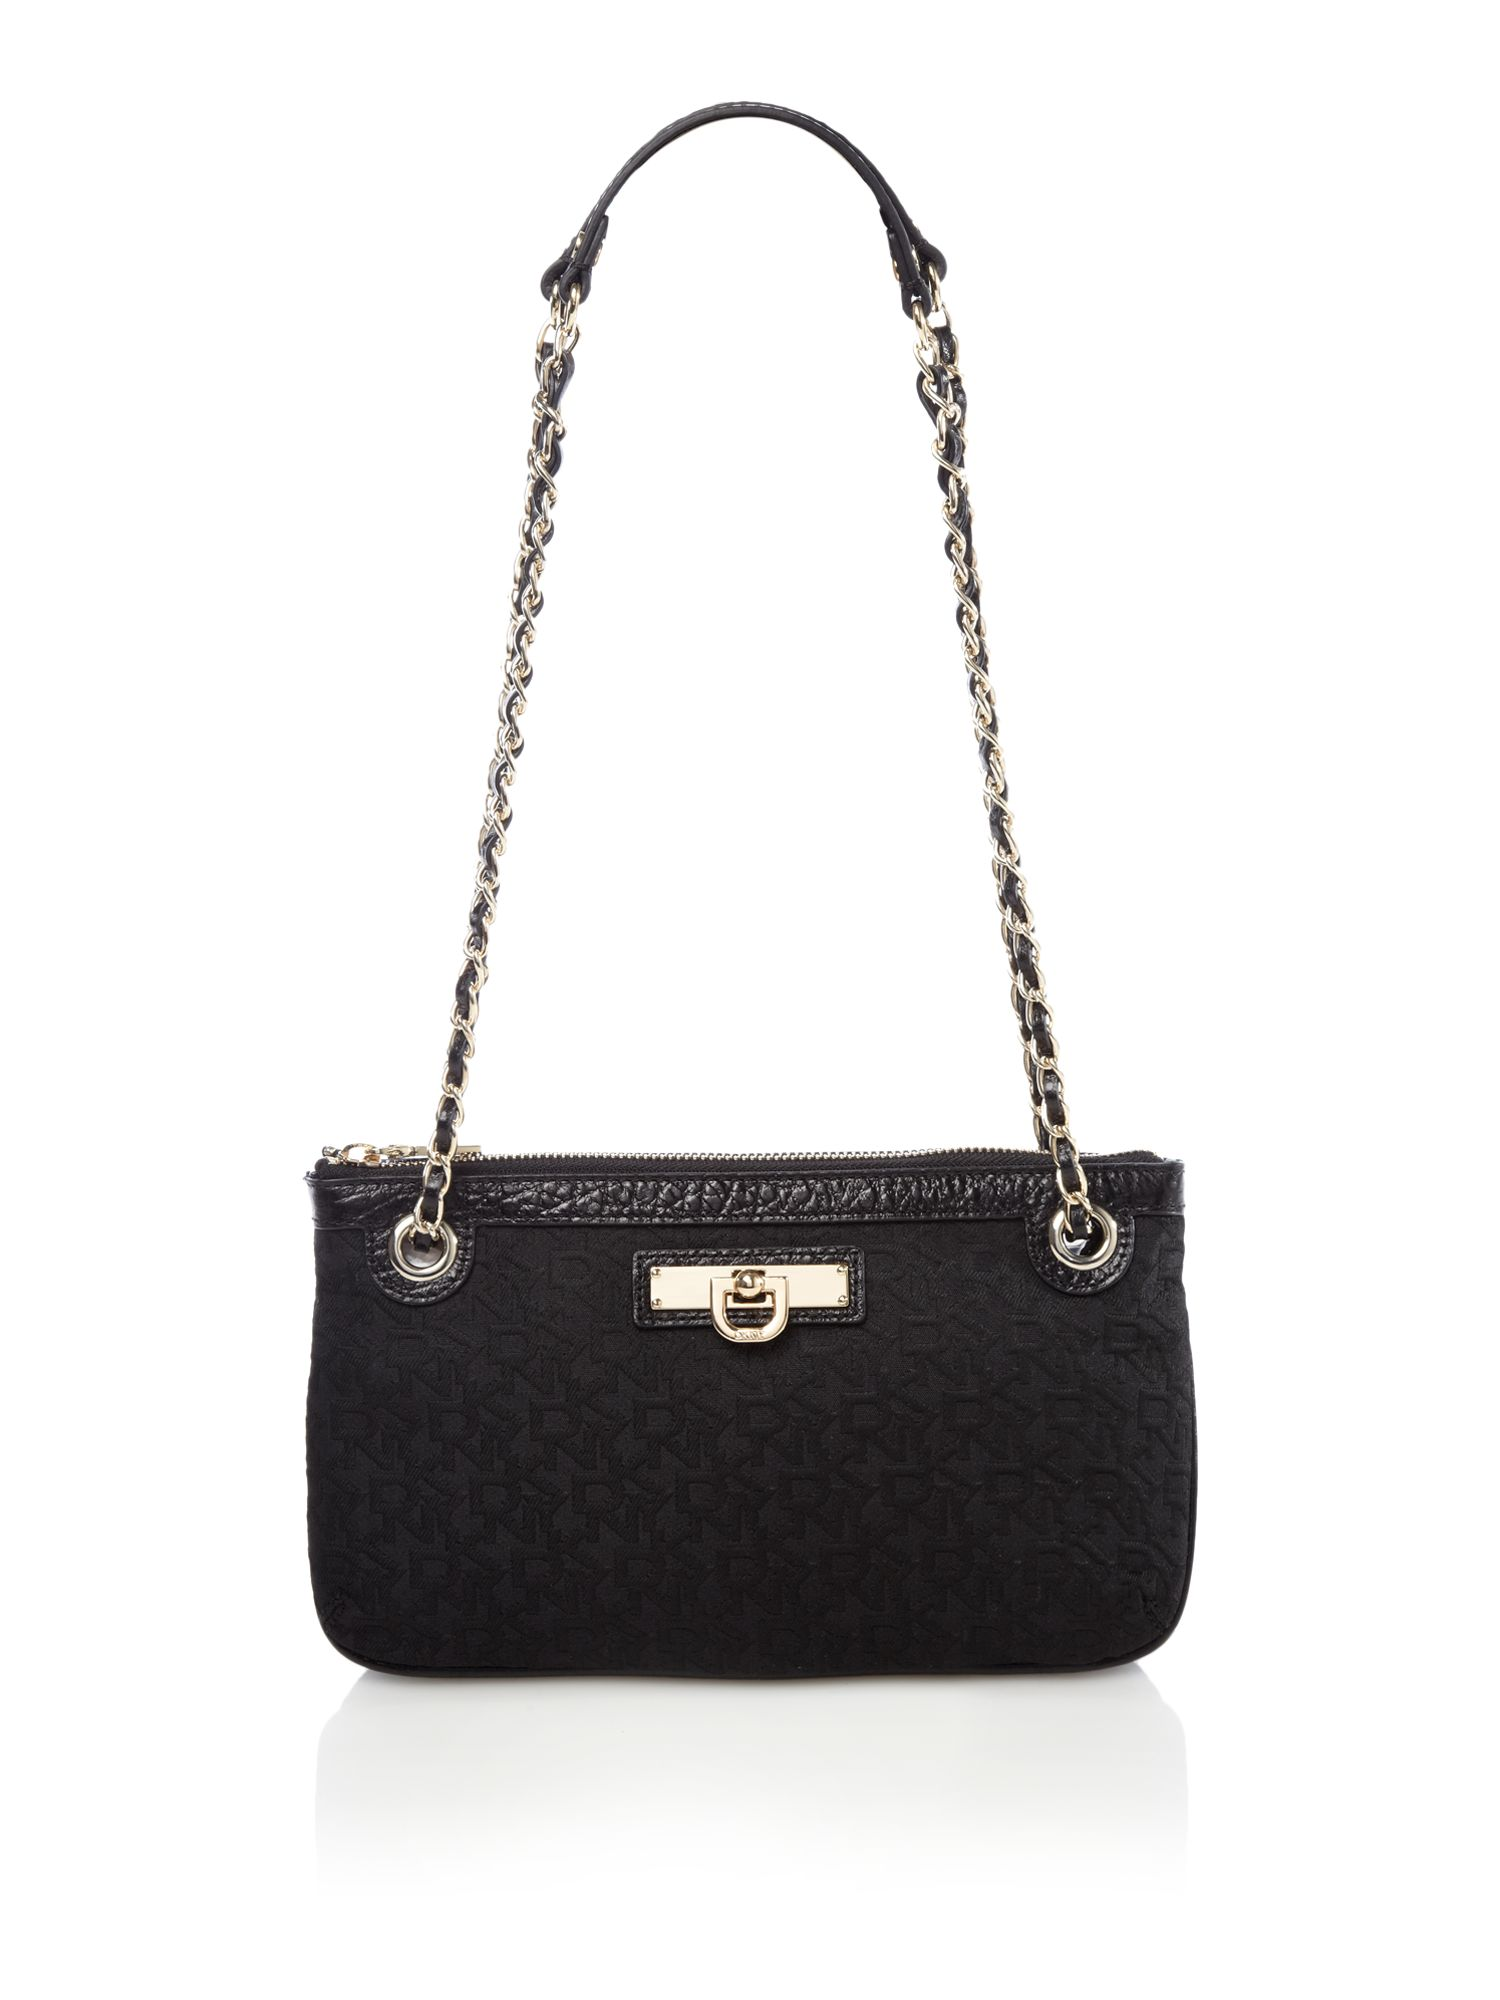 dkny item crossbody bag in black lyst